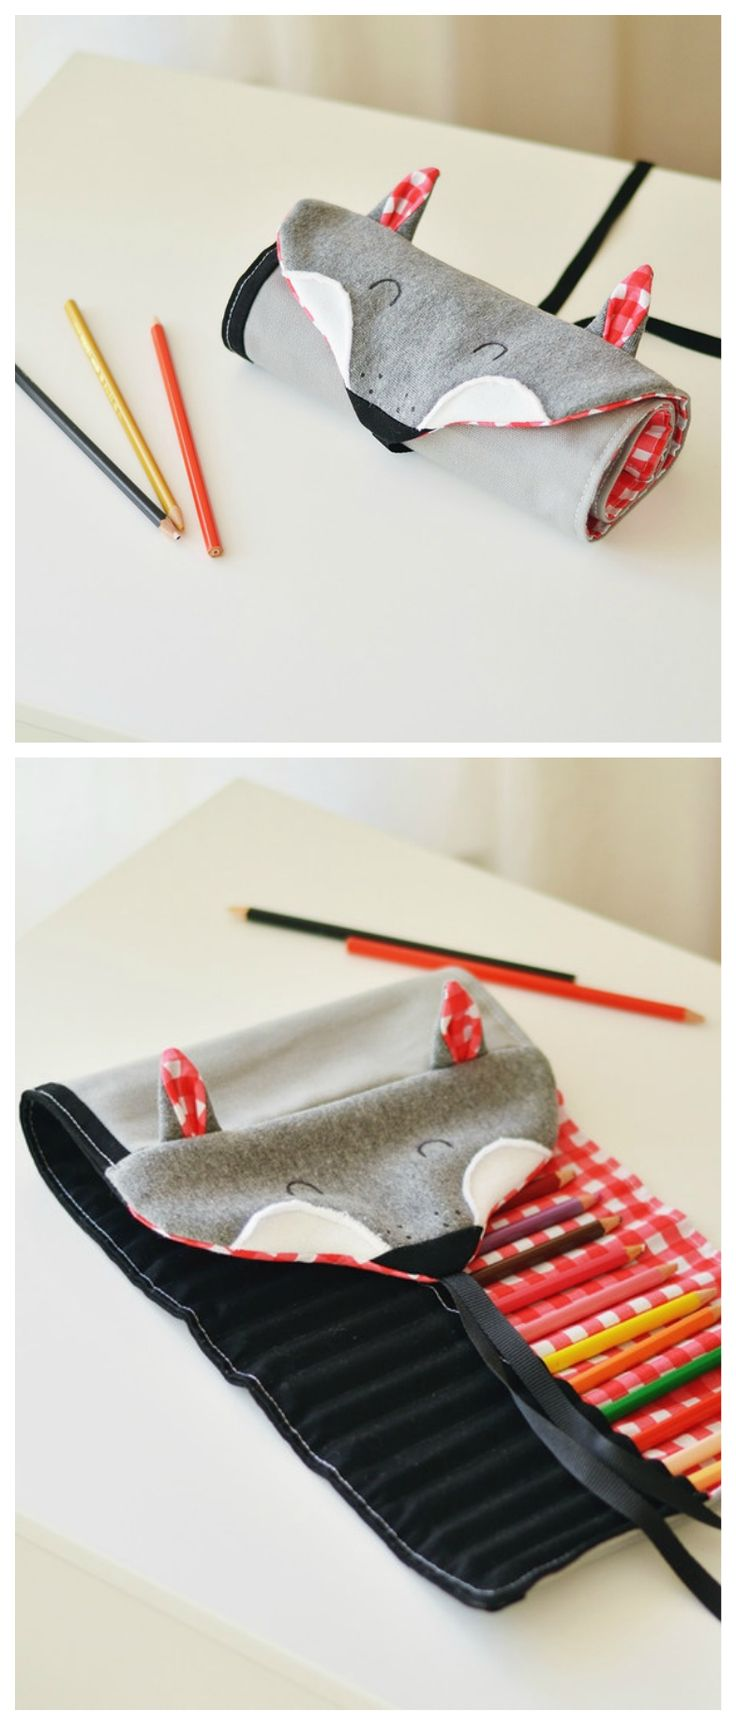 Witzige Stiftemappe für Schulkinder, Geschenk zur Einschulung / funny pencil case for the first day of school, back to school products made by Lady-Stump via DaWanda.com